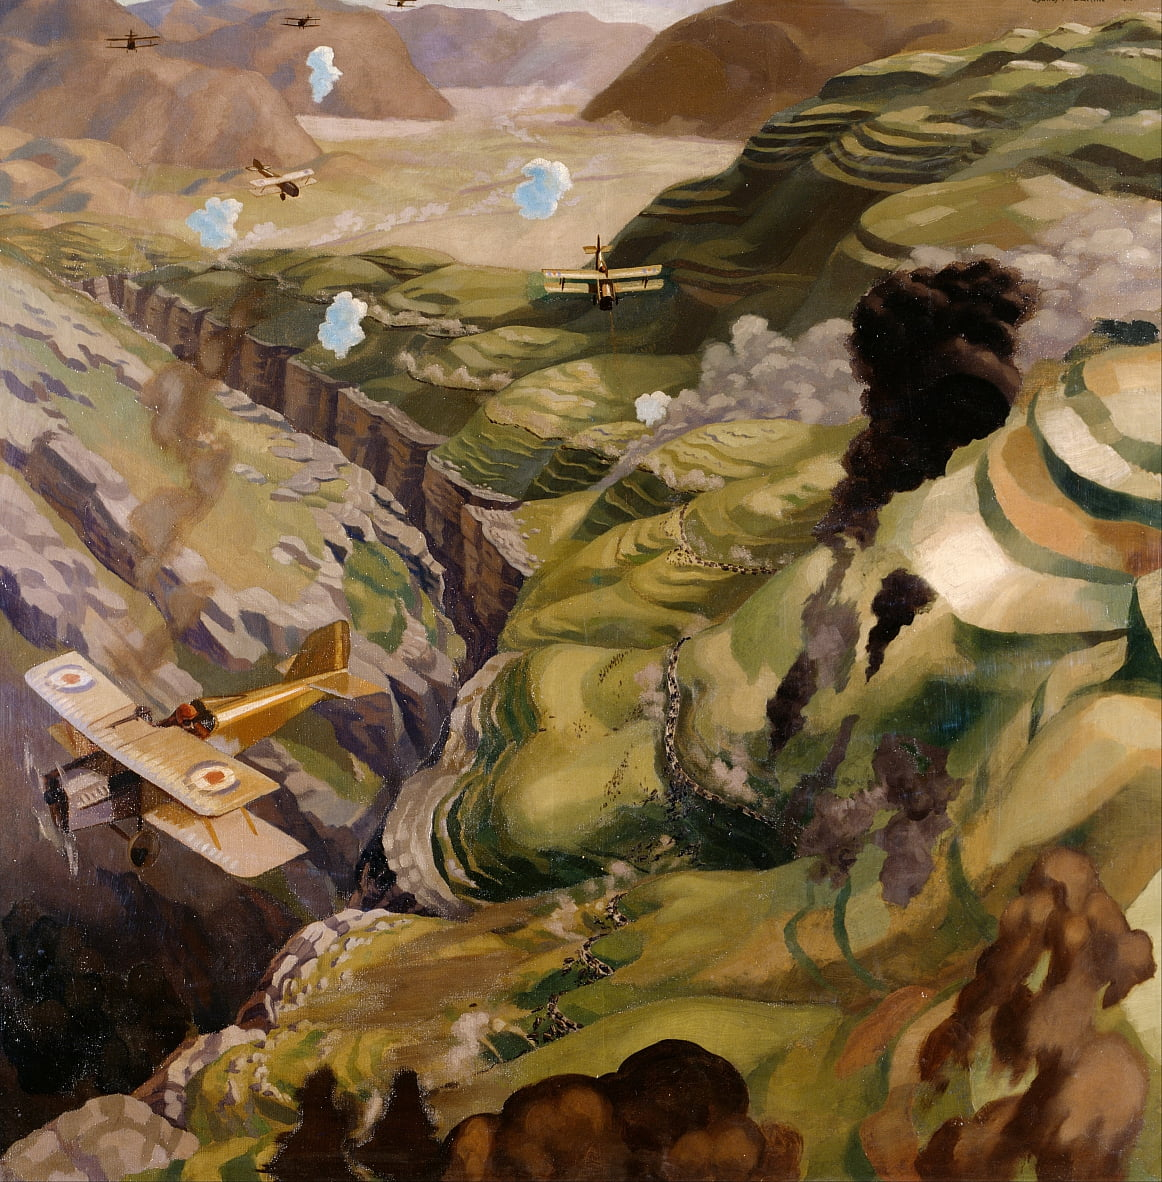 The Destruction of the Turkish Transport in the Gorge of the Wadi Fara, Palestine by Sydney Carline